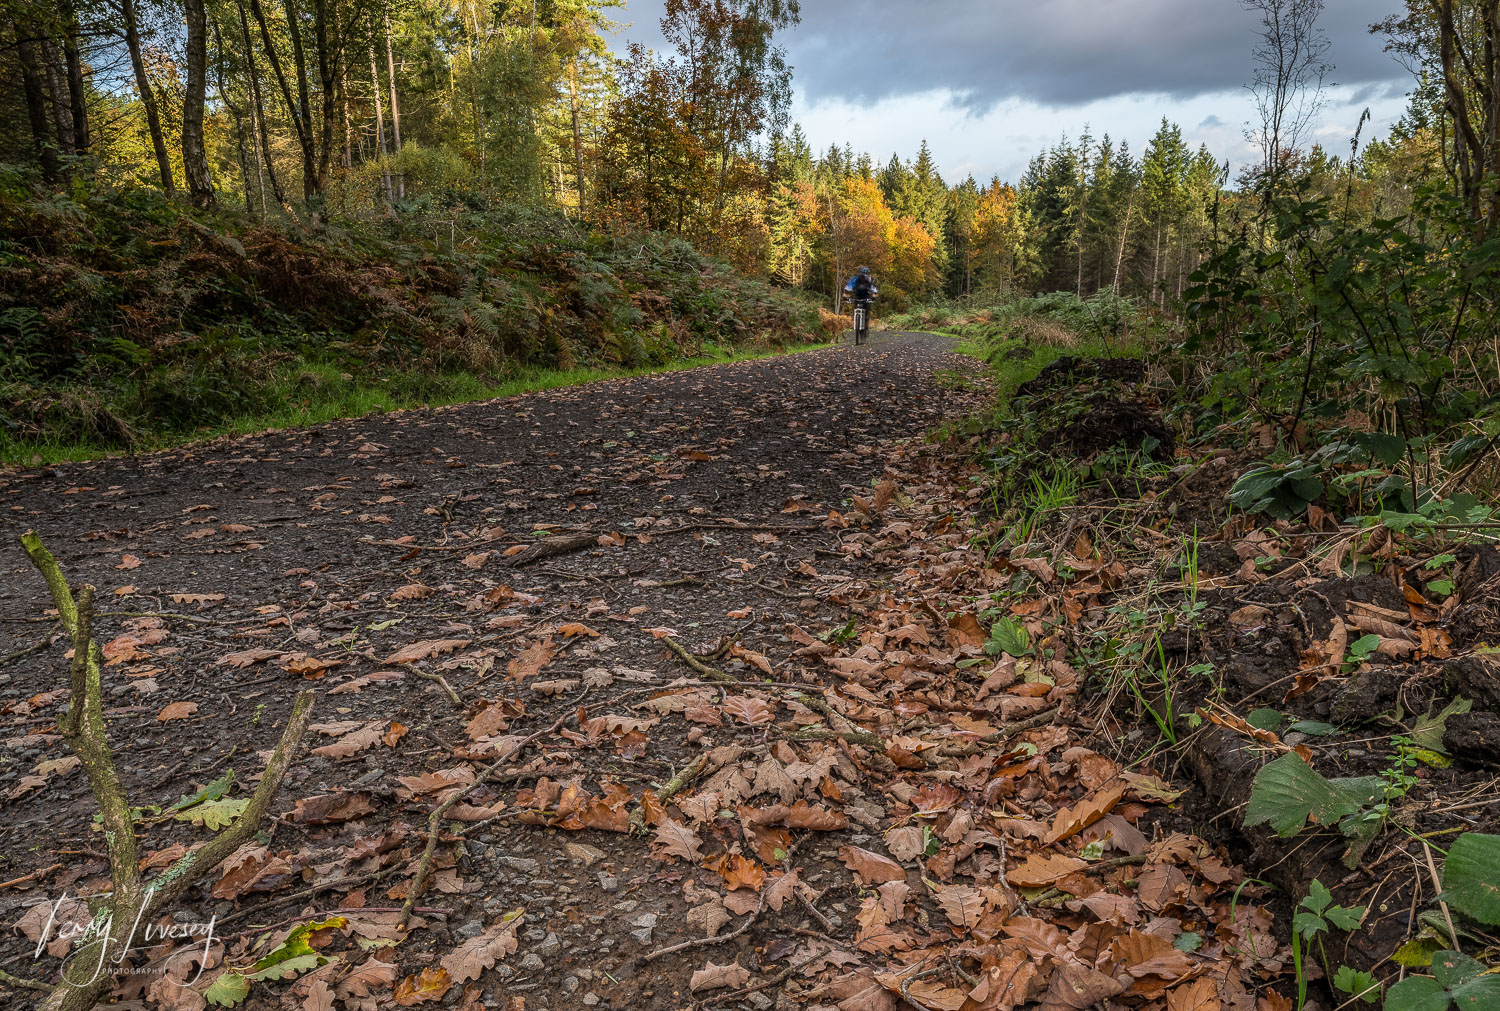 The Wyre Forest is a very bike friendly area, with miles and miles of paths and off-road tracks to explore.